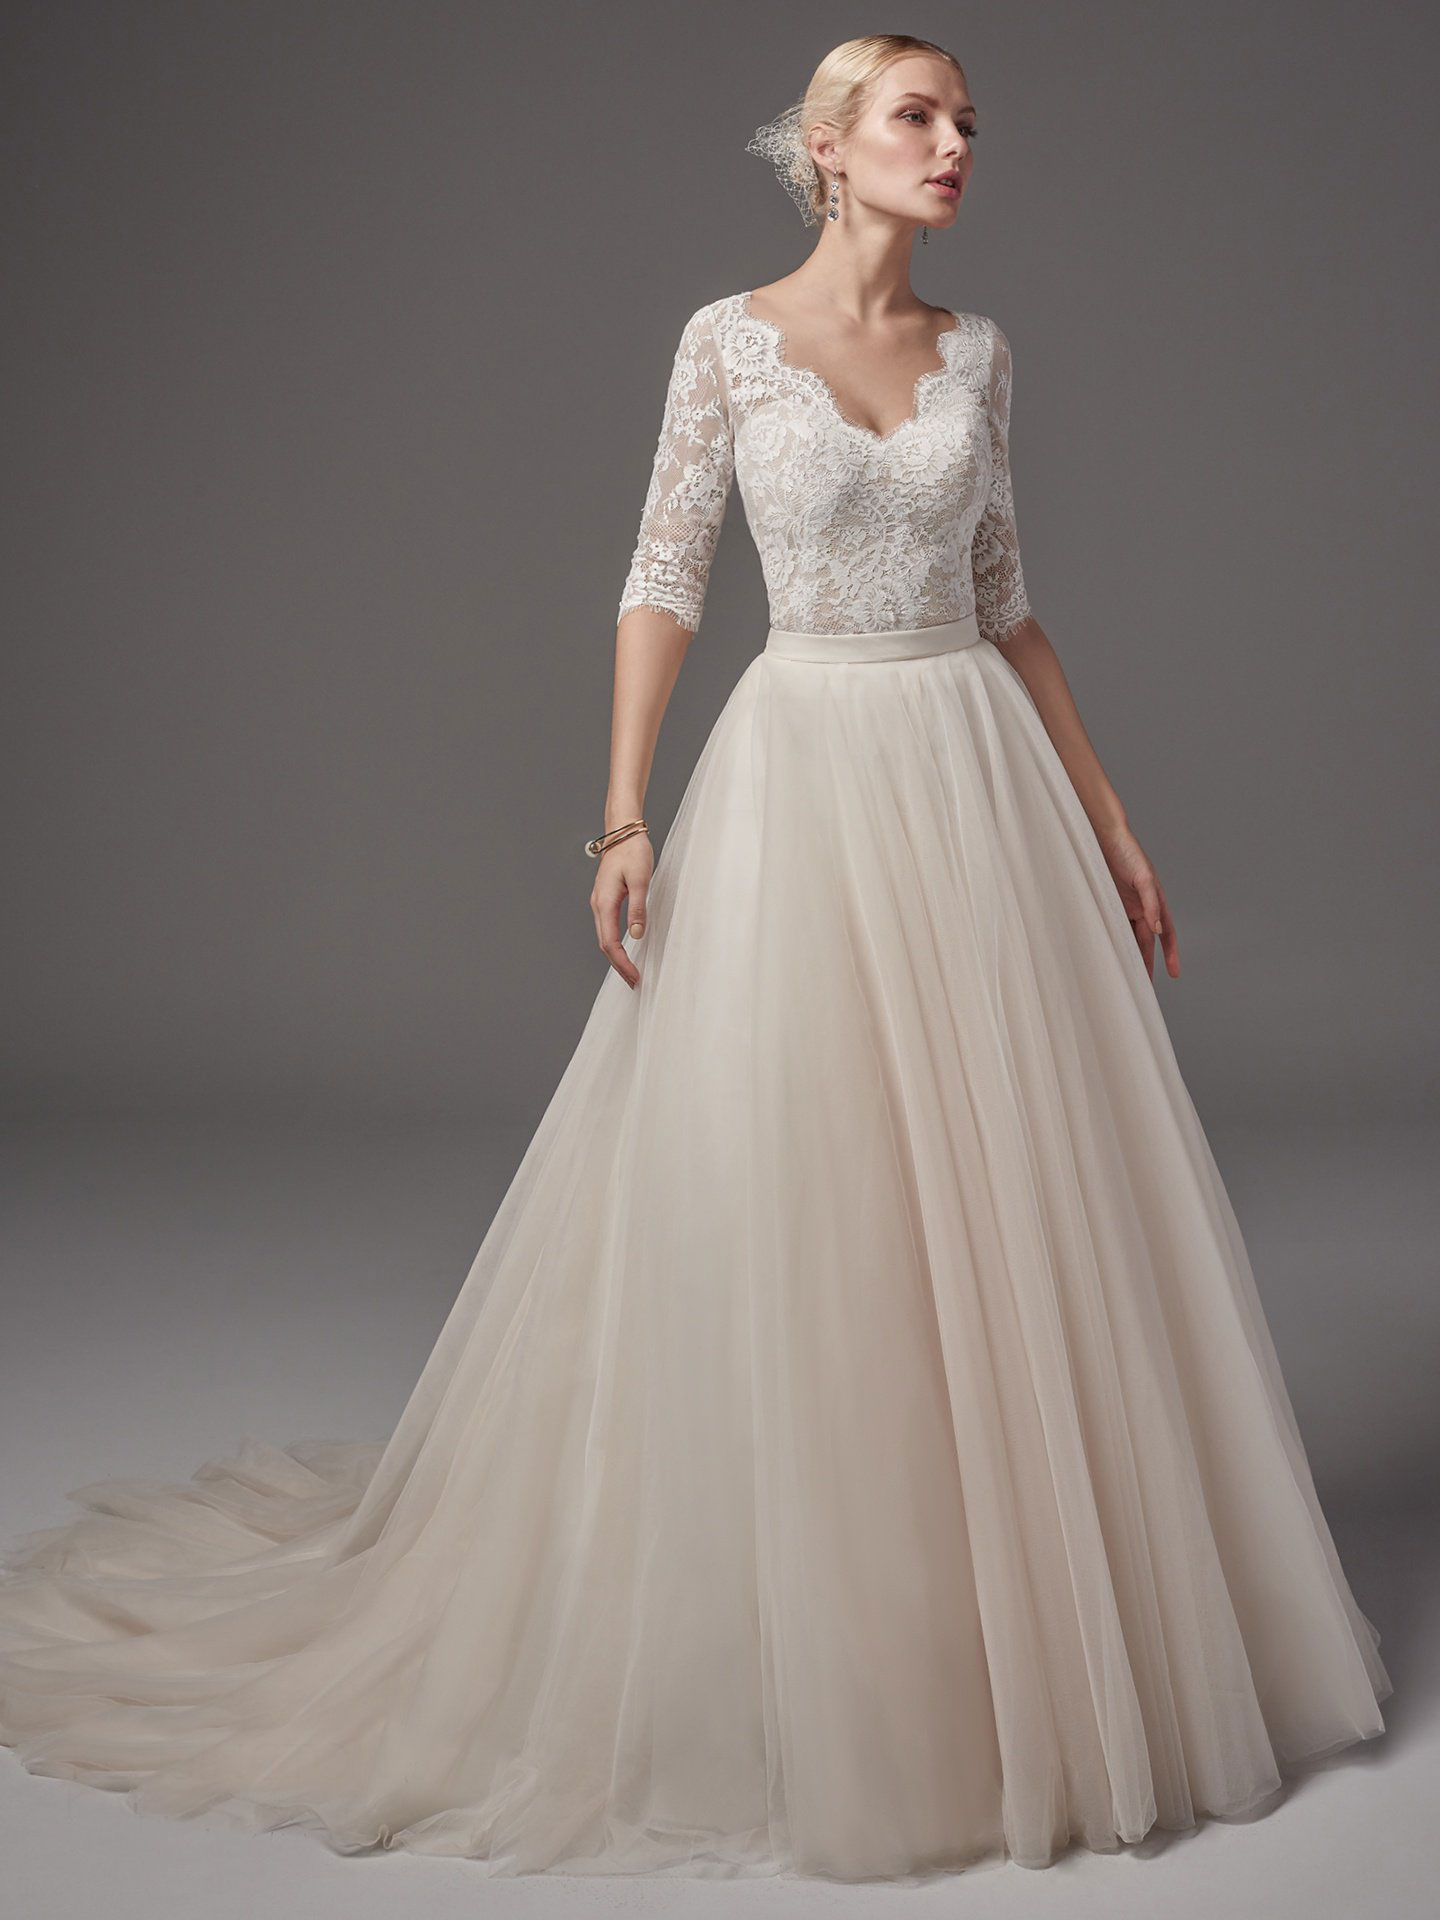 Sottero &#038; Midgley <br> Kensington &#038; Kallin skirt